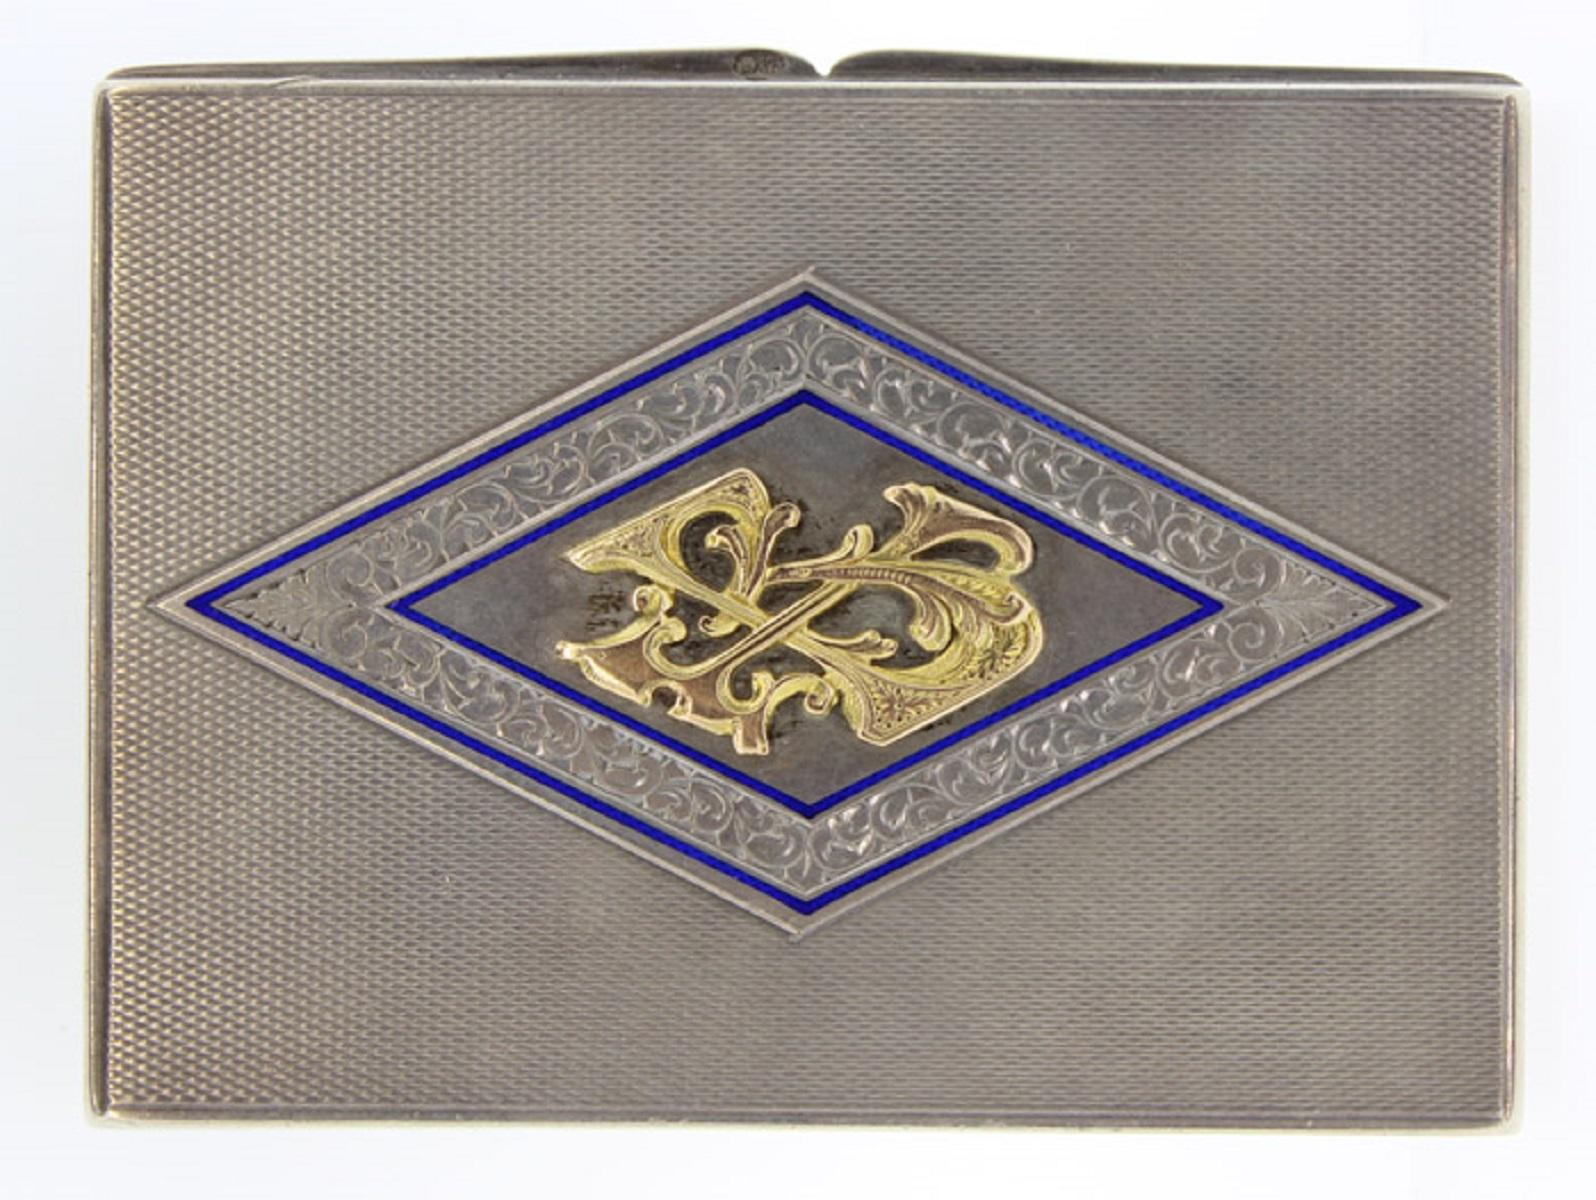 Antique Silver (0.900) Card or Cigarette Case with central design in Gold